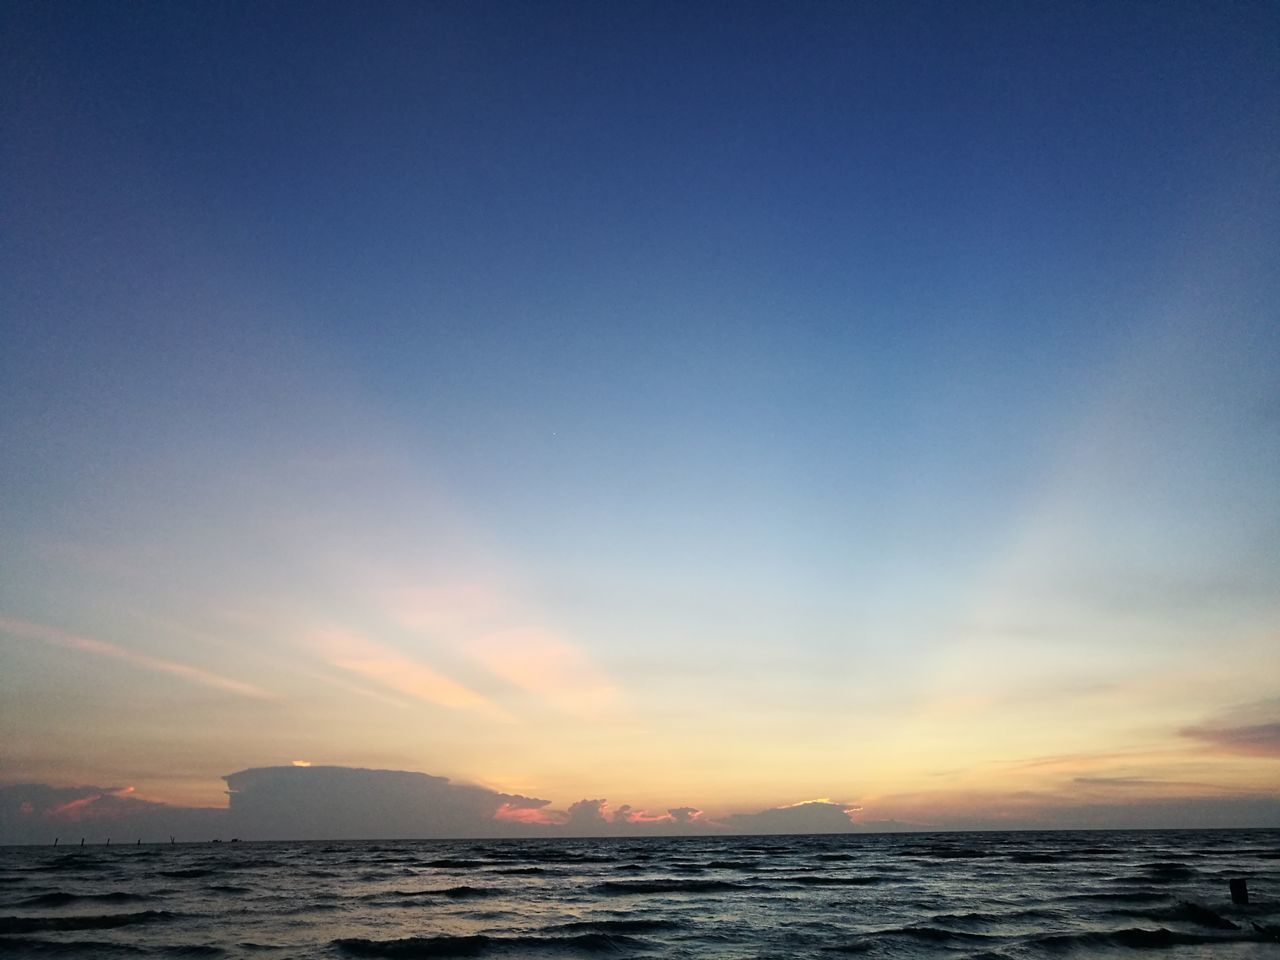 sea, sunset, scenics, sky, beauty in nature, nature, tranquil scene, tranquility, horizon over water, water, beach, outdoors, no people, silhouette, blue, clear sky, day